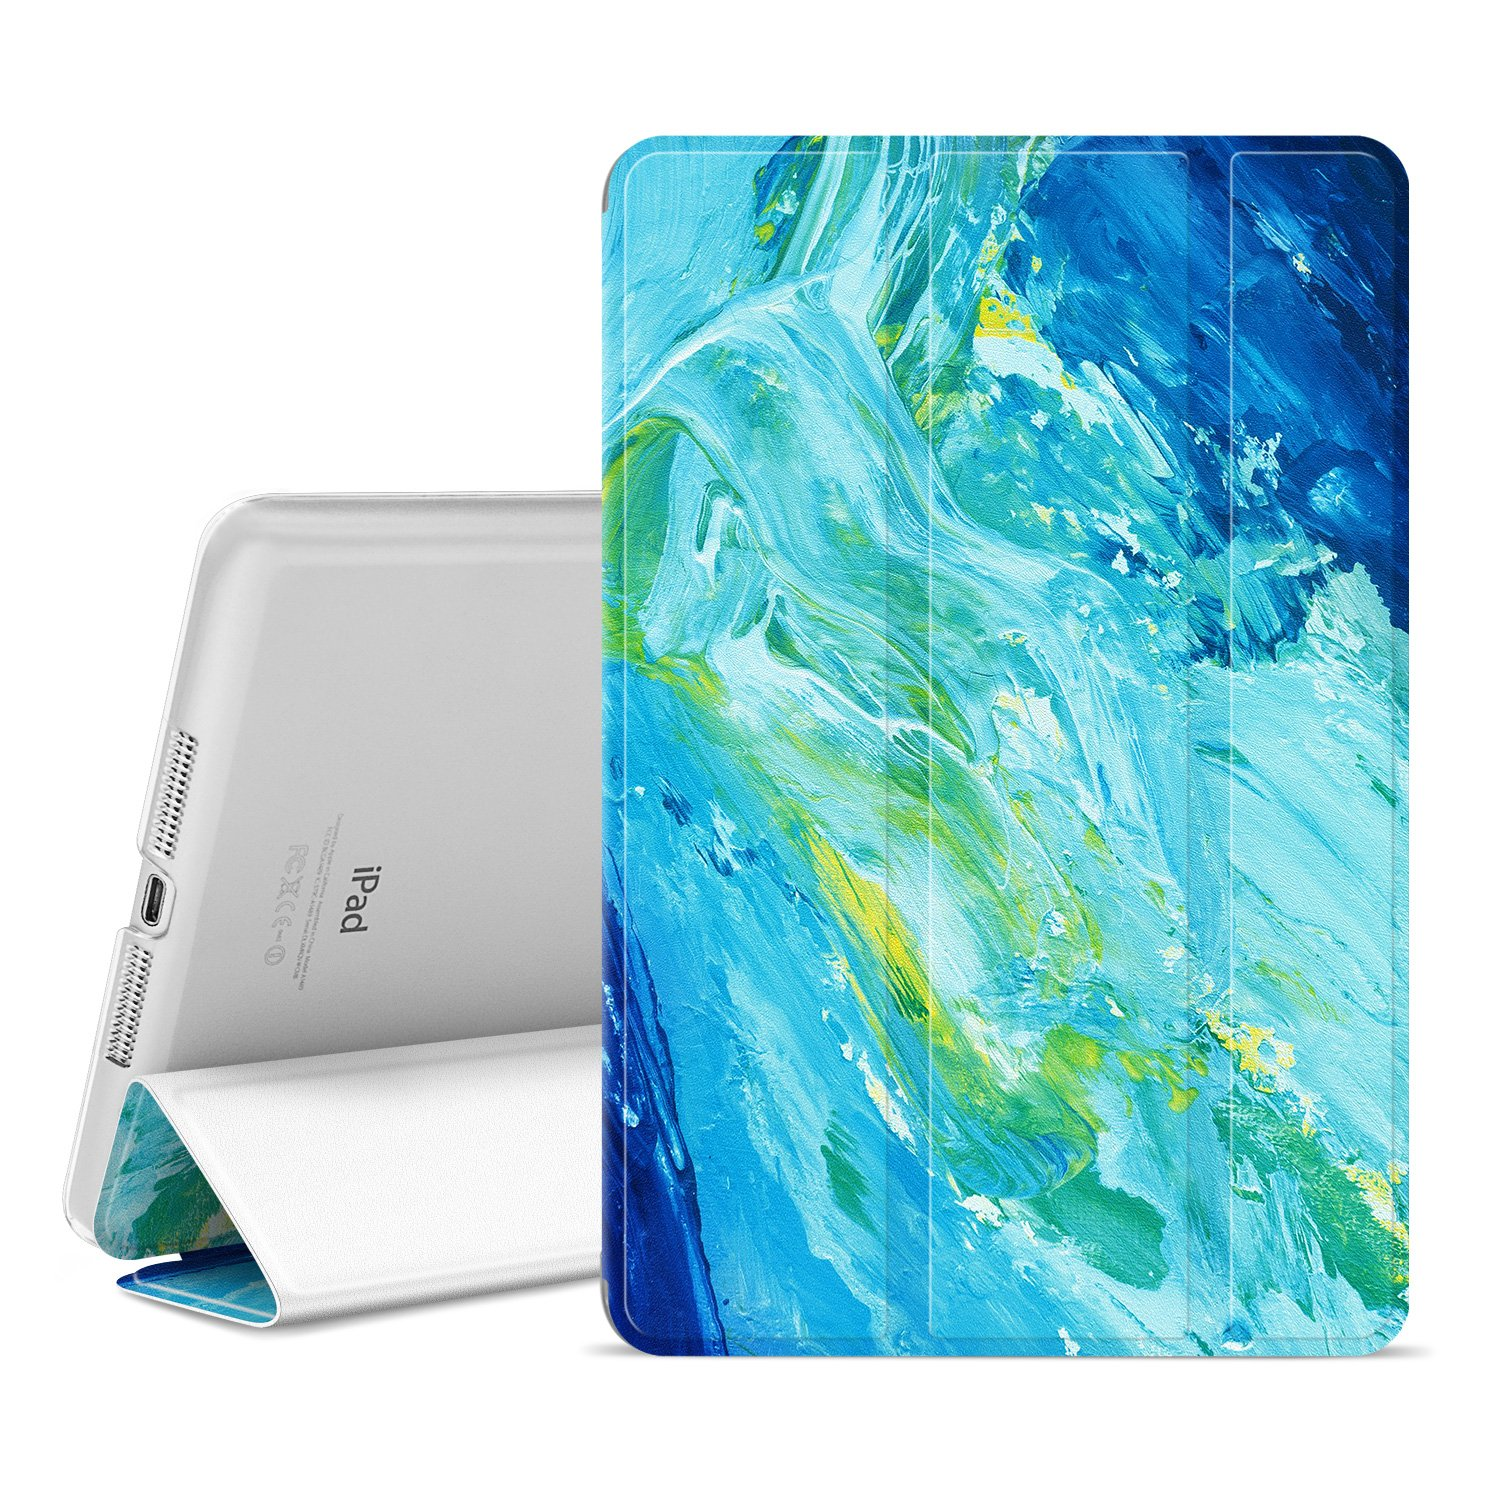 Ayotu Colorful Shell for iPad Mini 1 Case,Mini 2 Cover Mini 3 Slim Stand Smart Cover with Auto Wake/Sleep Protective Cover for iPad Mini 1/Mini 2/Mini 3 The Oil Painting